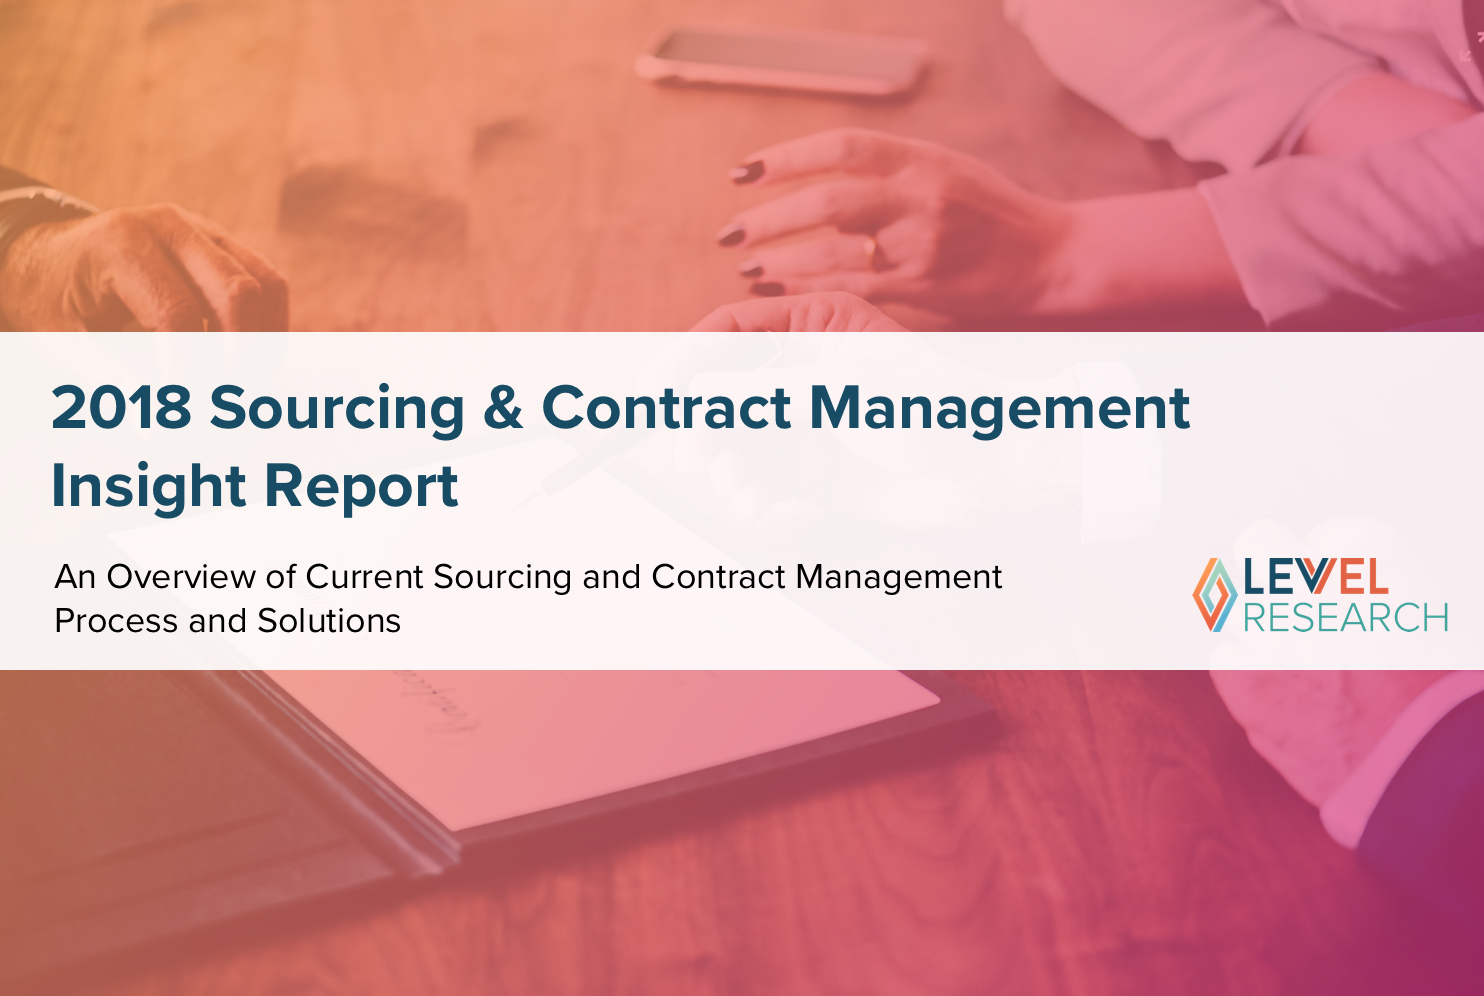 2018 Sourcing & Contract Management Insight Report